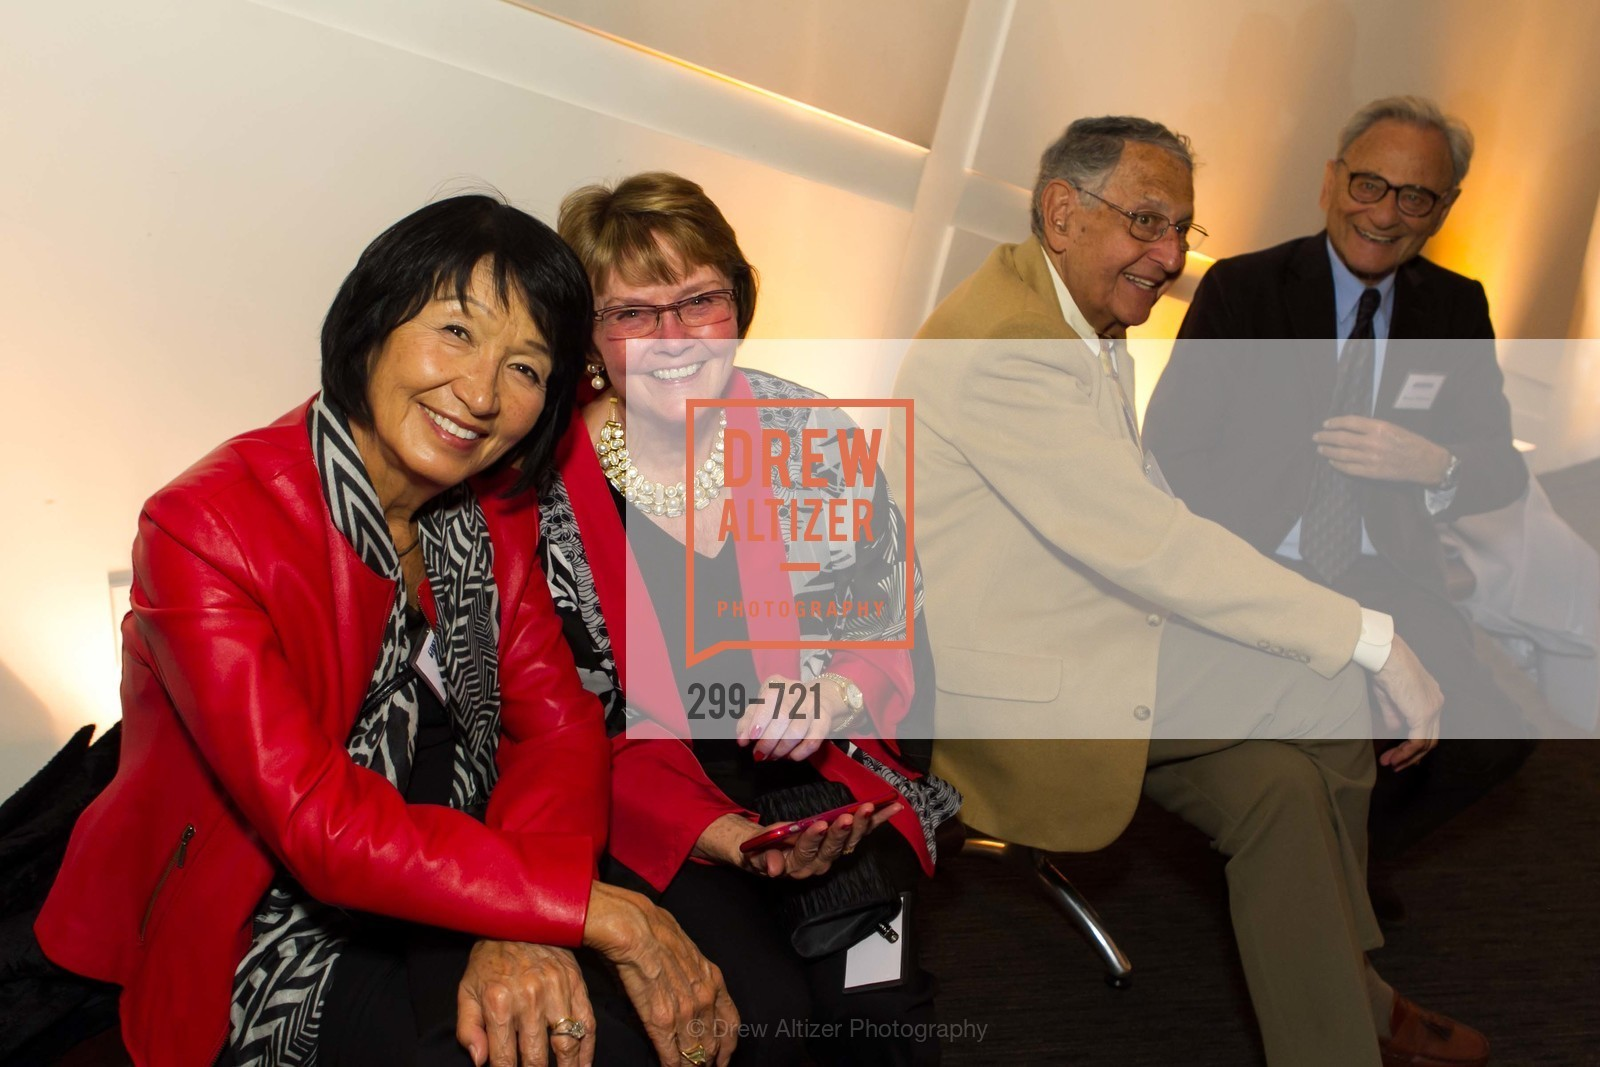 Glayns Marks, Diane Penn, Robert Jacob, Murray Walden, The 2015 Dorothy Saxe Invitational Celebration at the JEWISH MUSEUM, US, May 13th, 2015,Drew Altizer, Drew Altizer Photography, full-service agency, private events, San Francisco photographer, photographer california